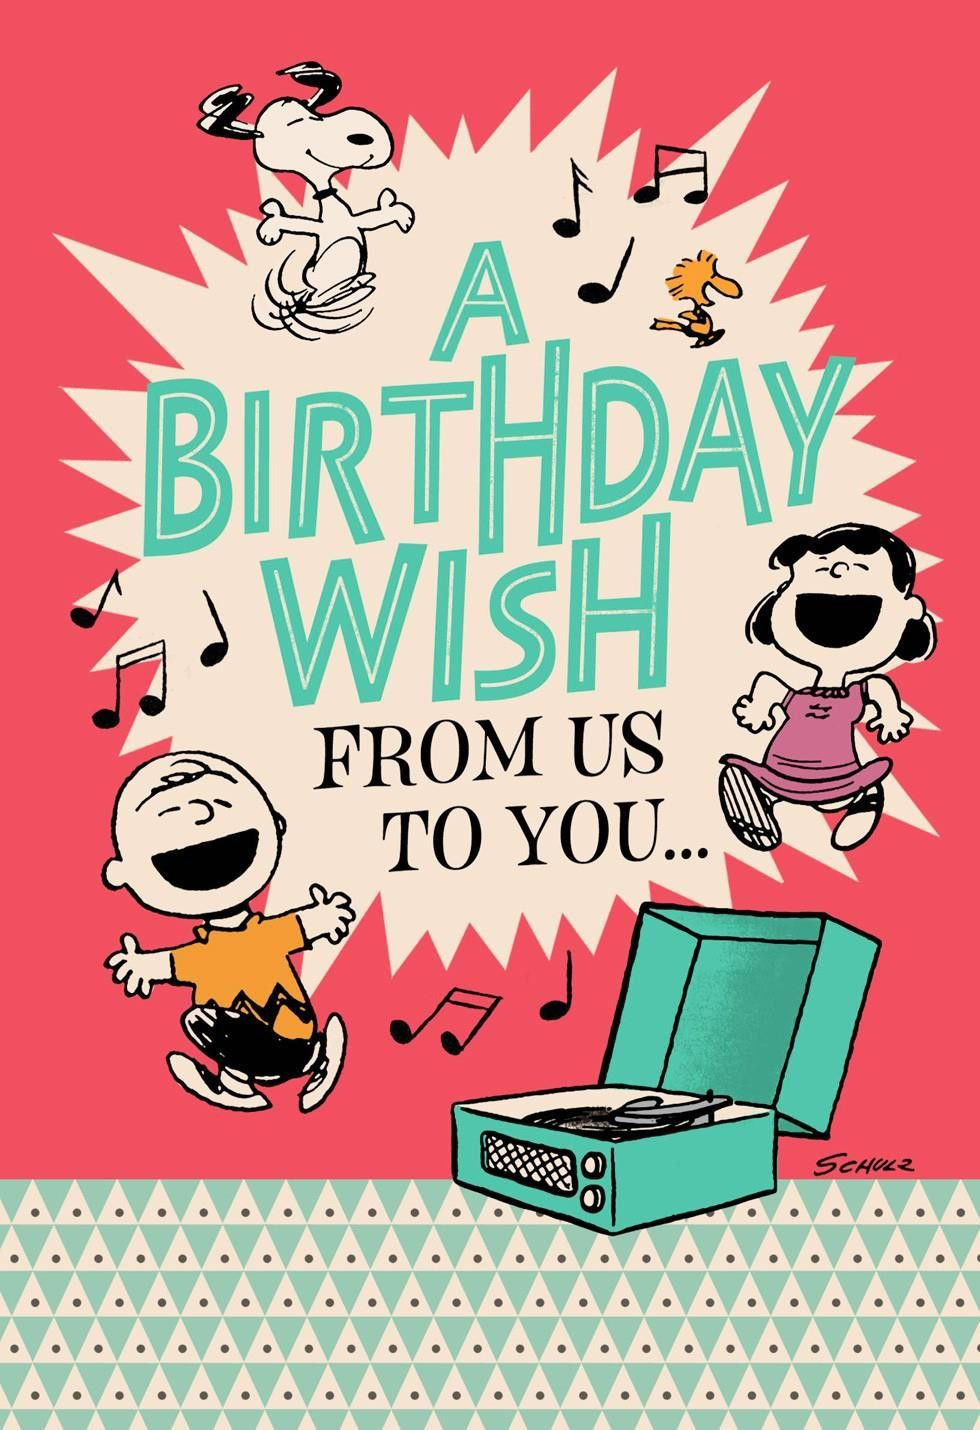 Peanuts Happiness The Whole Year Through Birthday Card 299hbd1764 20 Ideas For Birthdays Cards Snoopy Birthday Birthday Card Pictures Happy Birthday Uncle